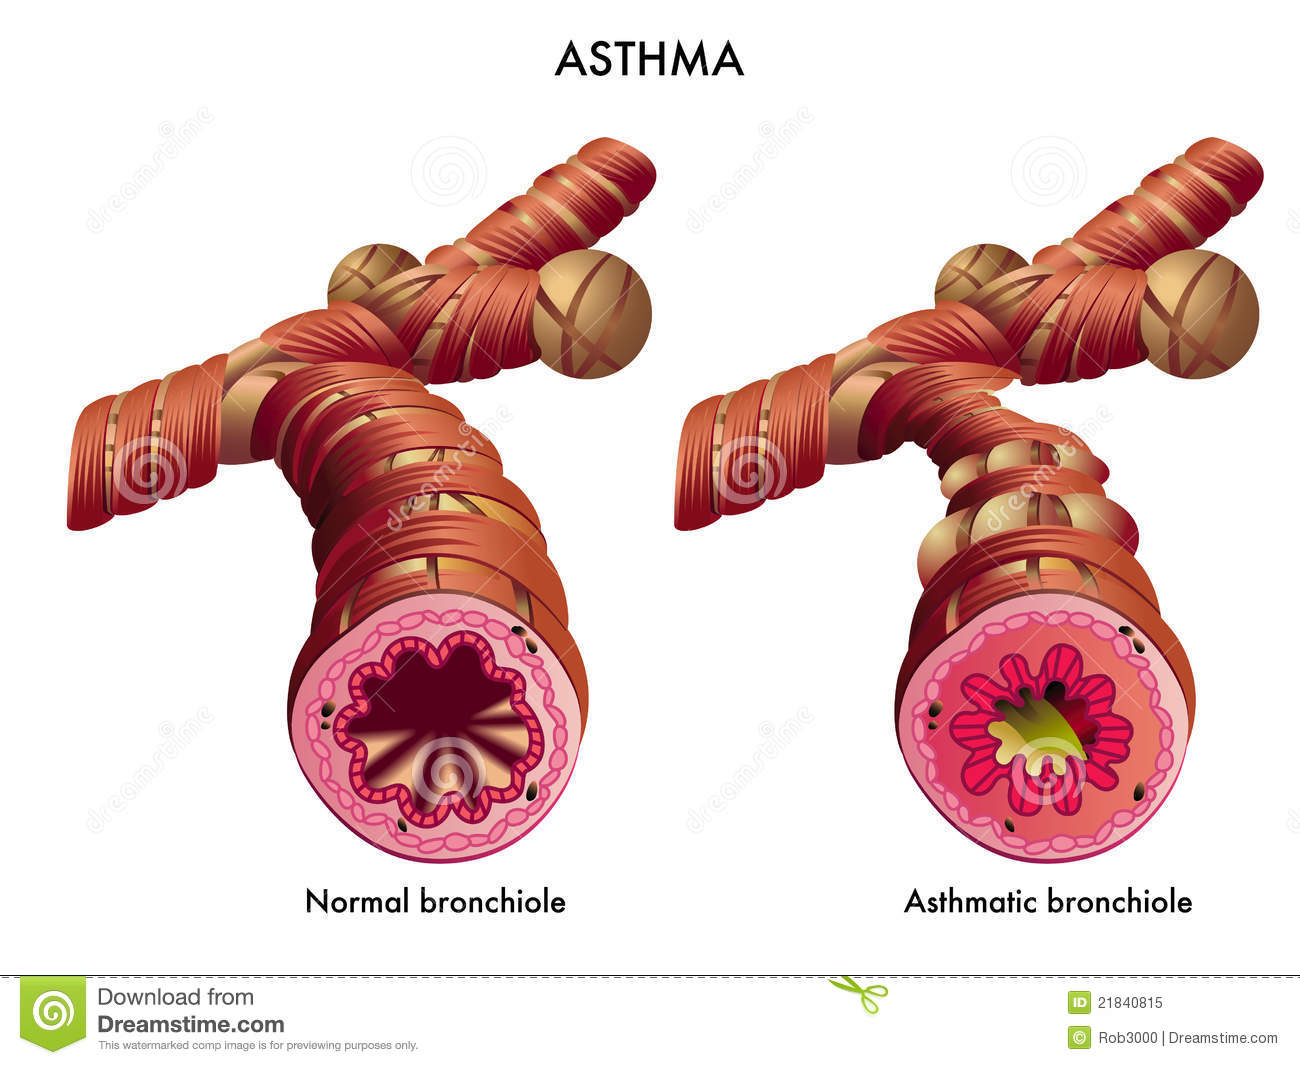 How Is the Respiratory System Affected by Asthma?